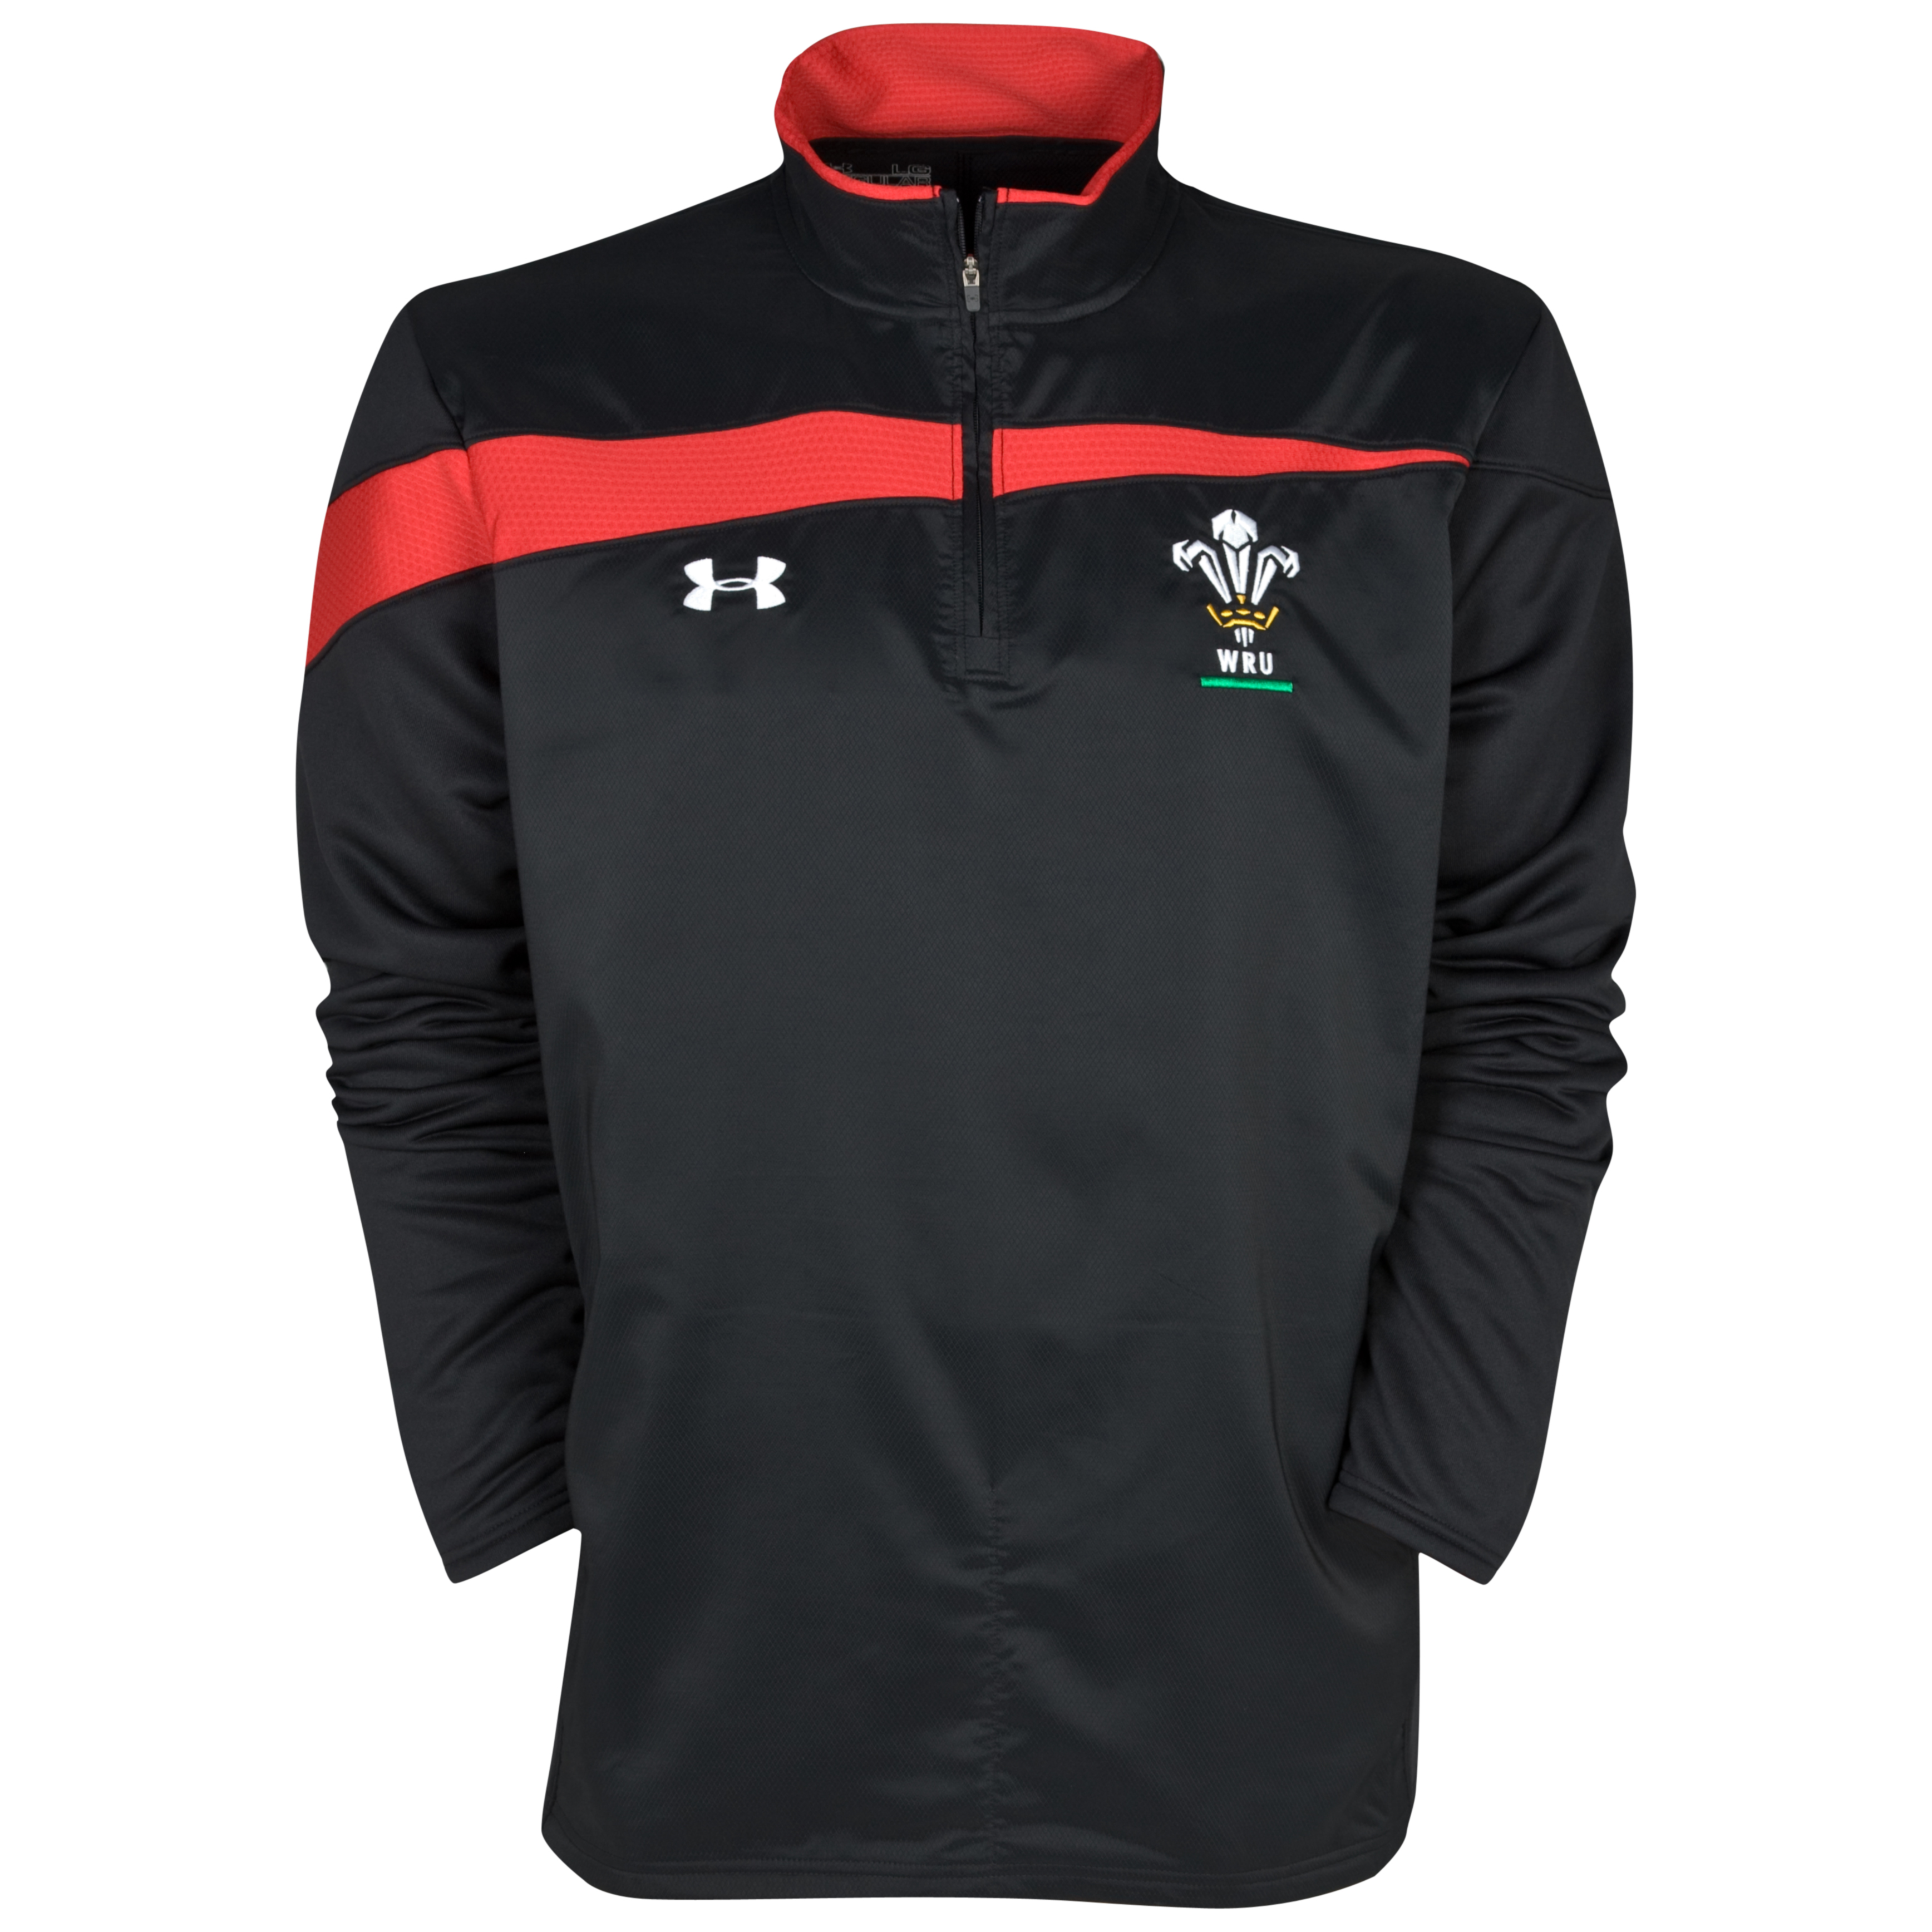 Wales Rugby Union 10k Force 1/4 Zip Top - Black/Red